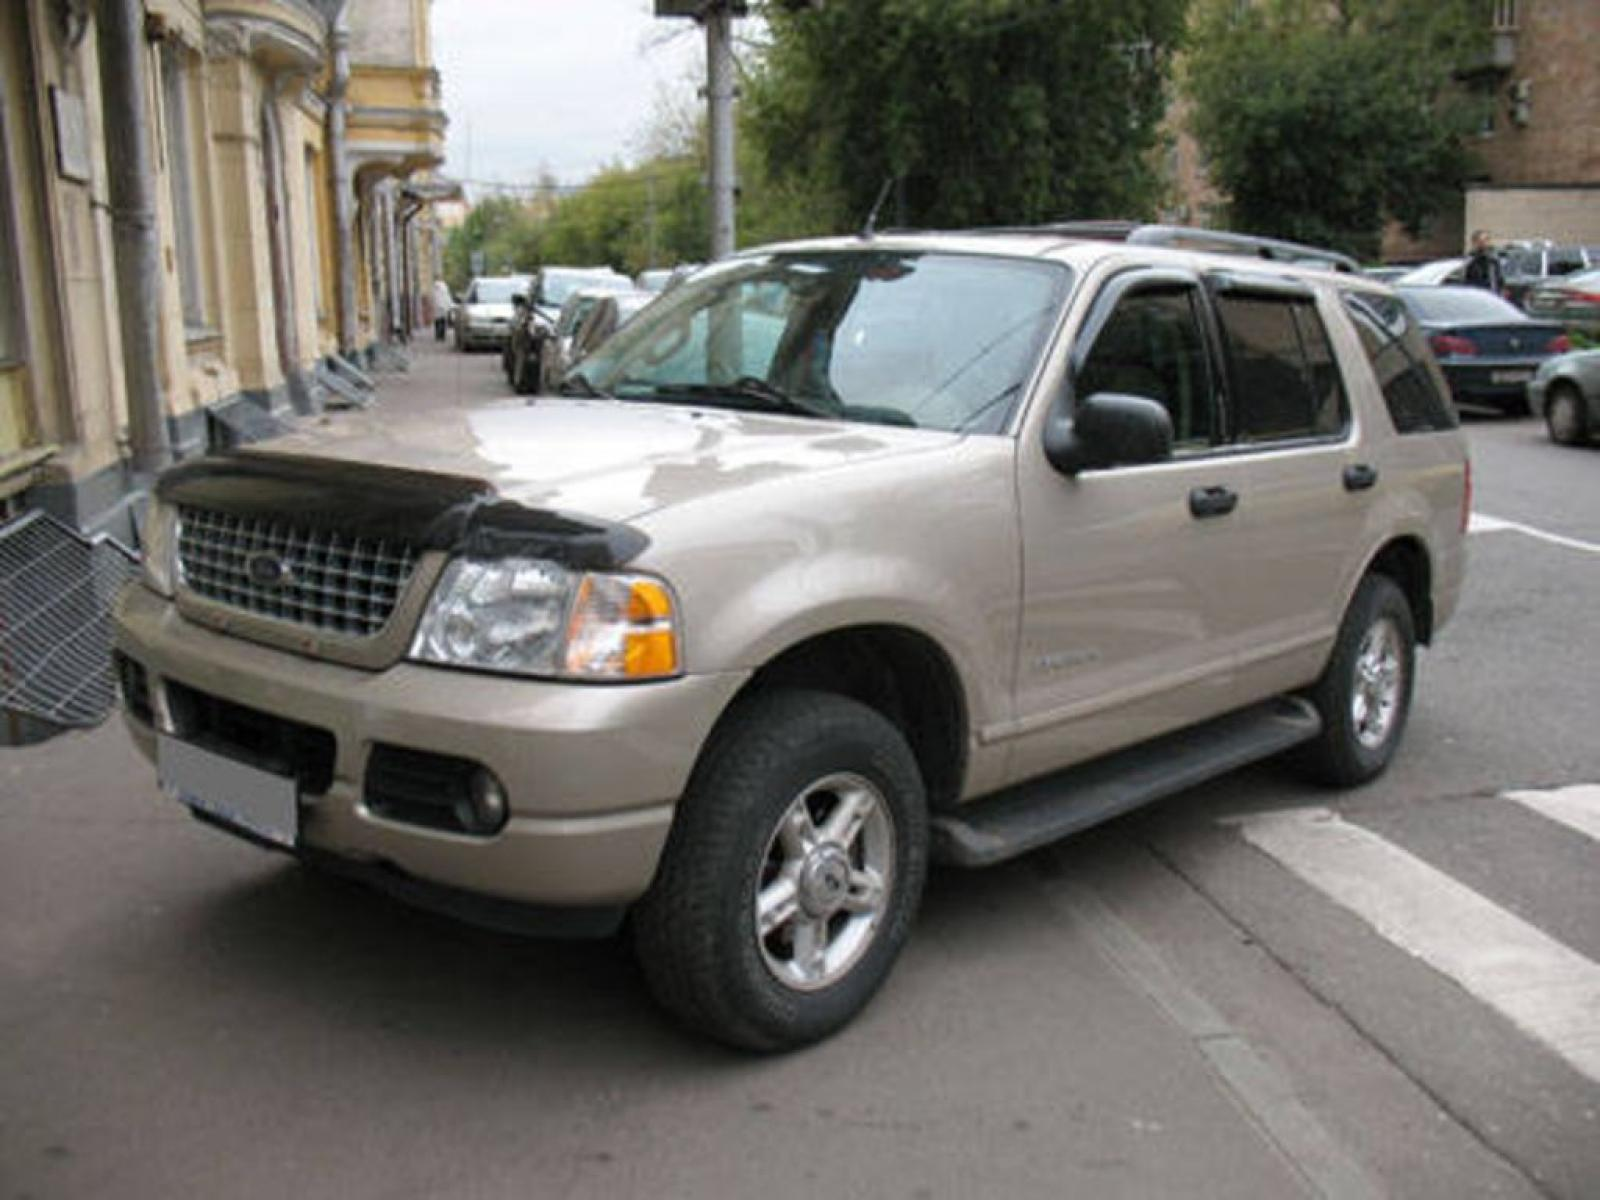 2004 Ford Explorer Information And Photos Zombiedrive Wiring Diagram Color Code 800 1024 1280 1600 Origin